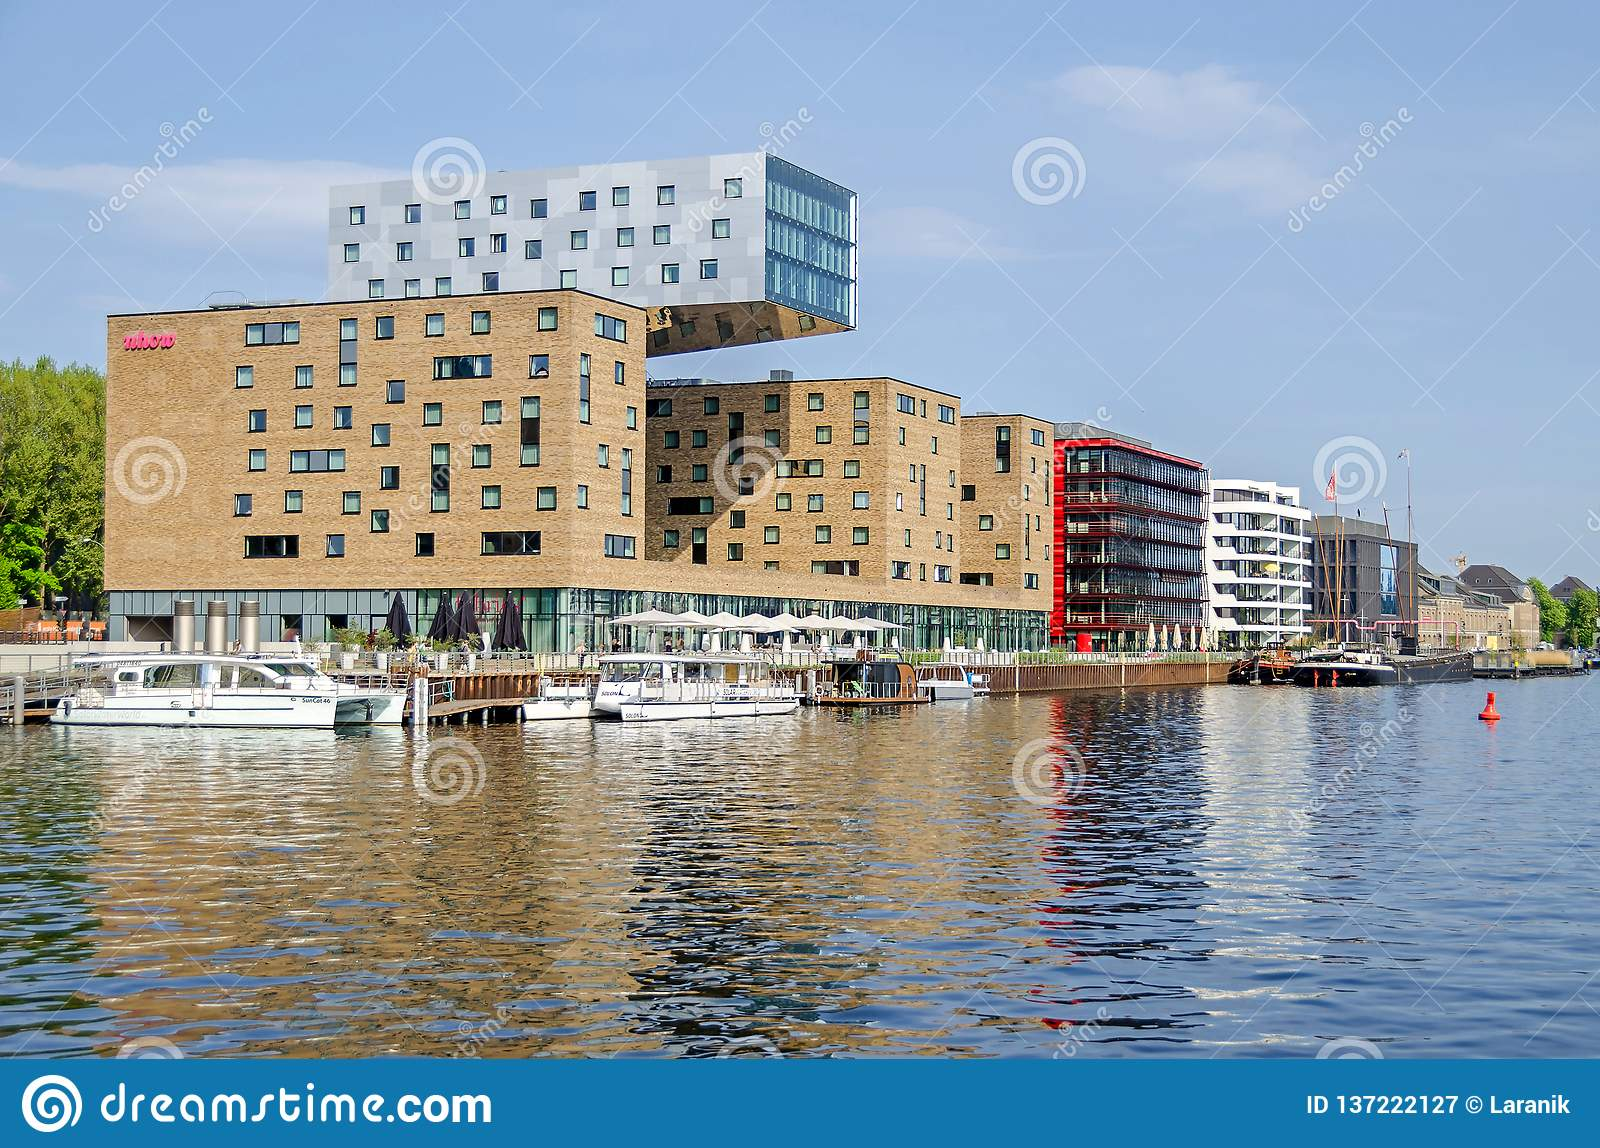 hotel nhow europe's first music berlin germany april center creative media district banks river spree its